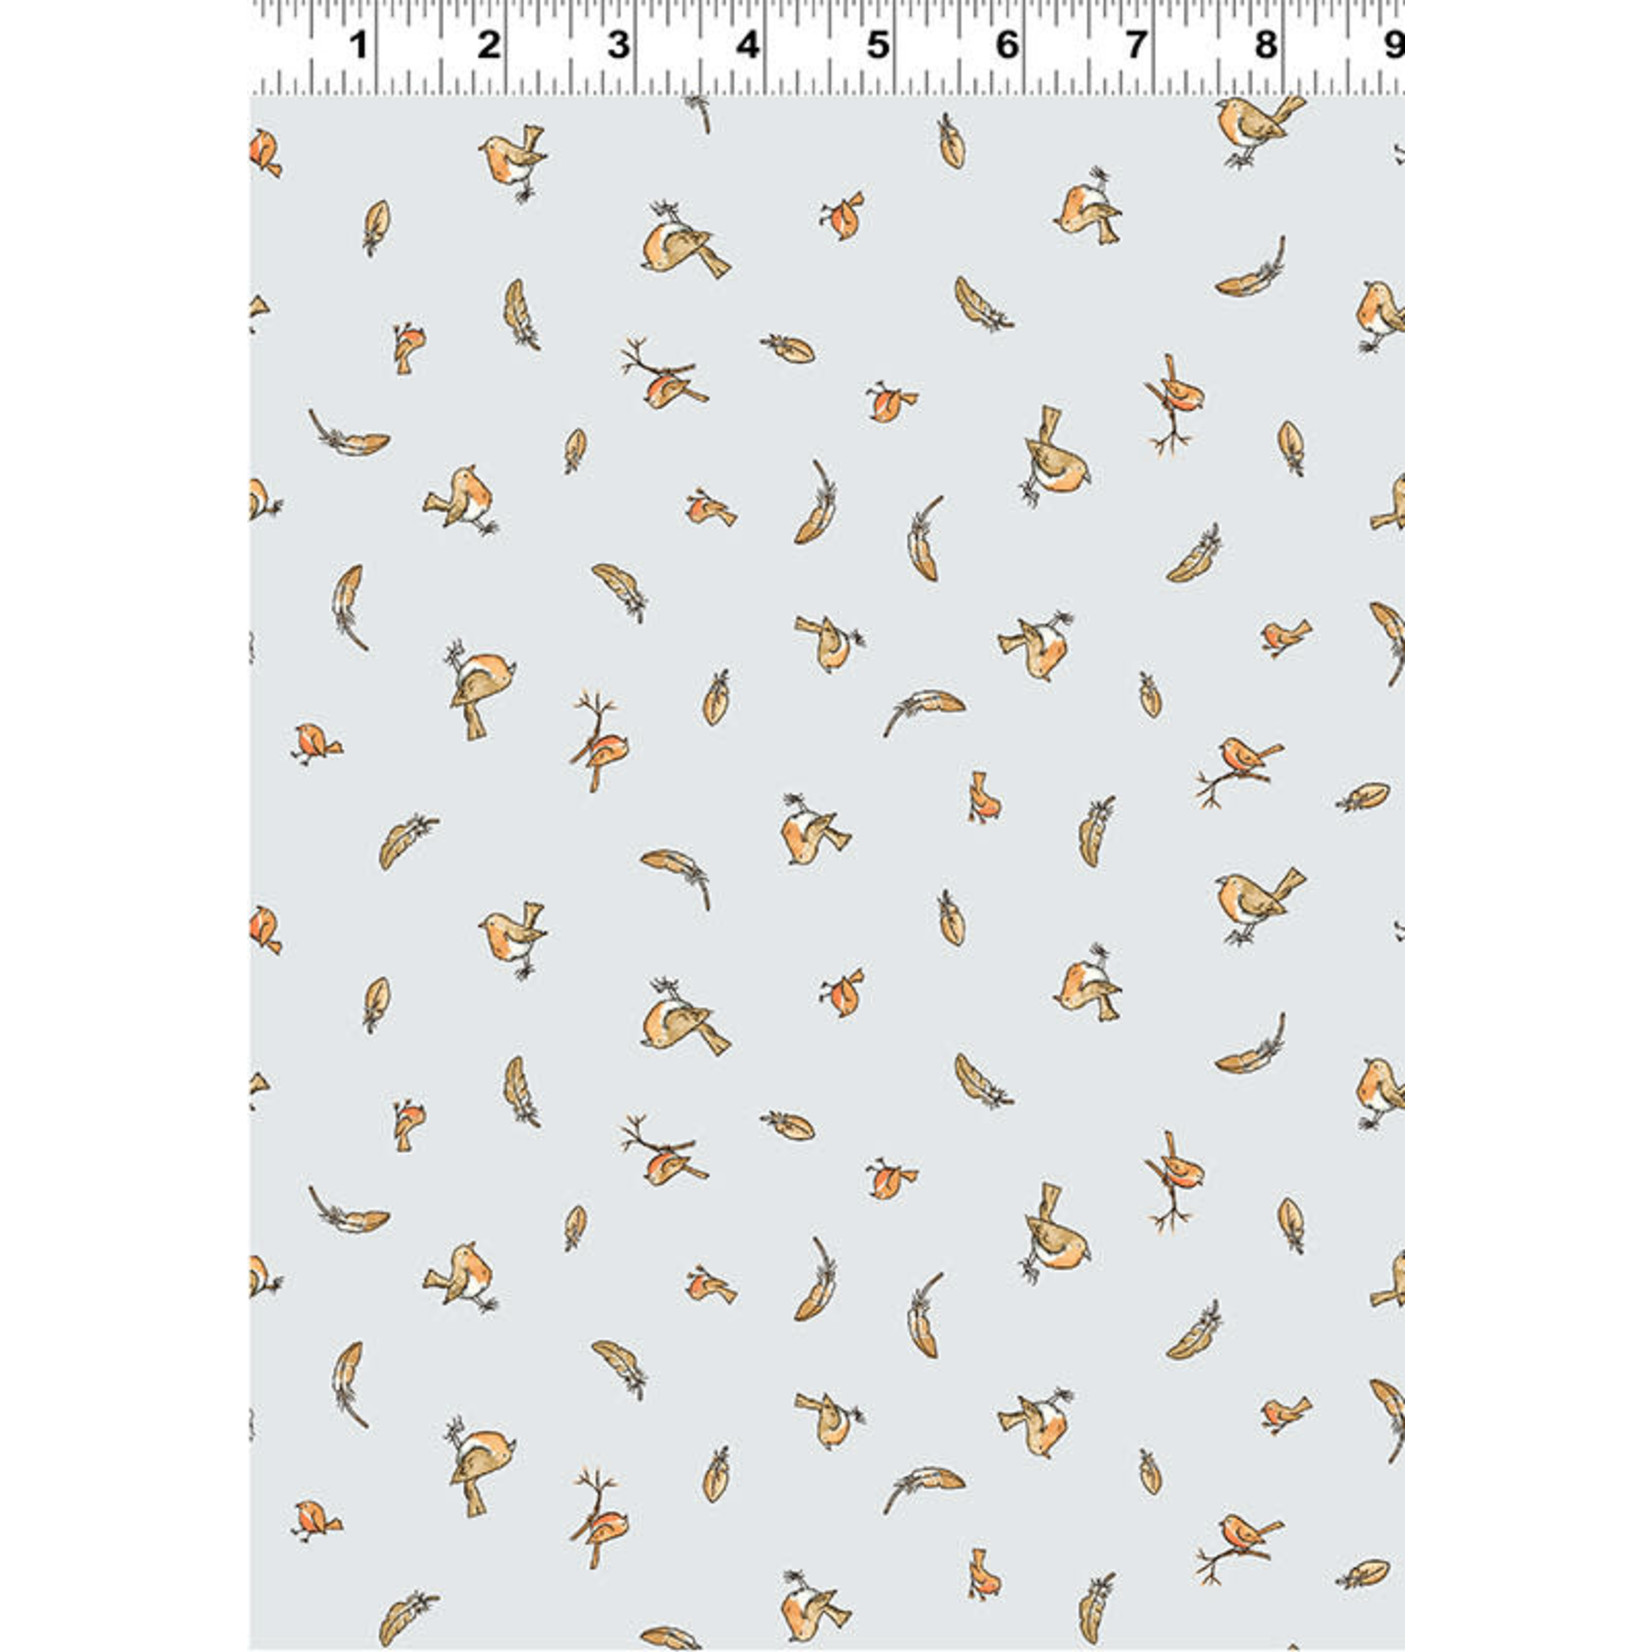 Clothworks Guess How Much I Love You, Tossed Birds & Feathers, Grey (Y3082-118) 1 meter